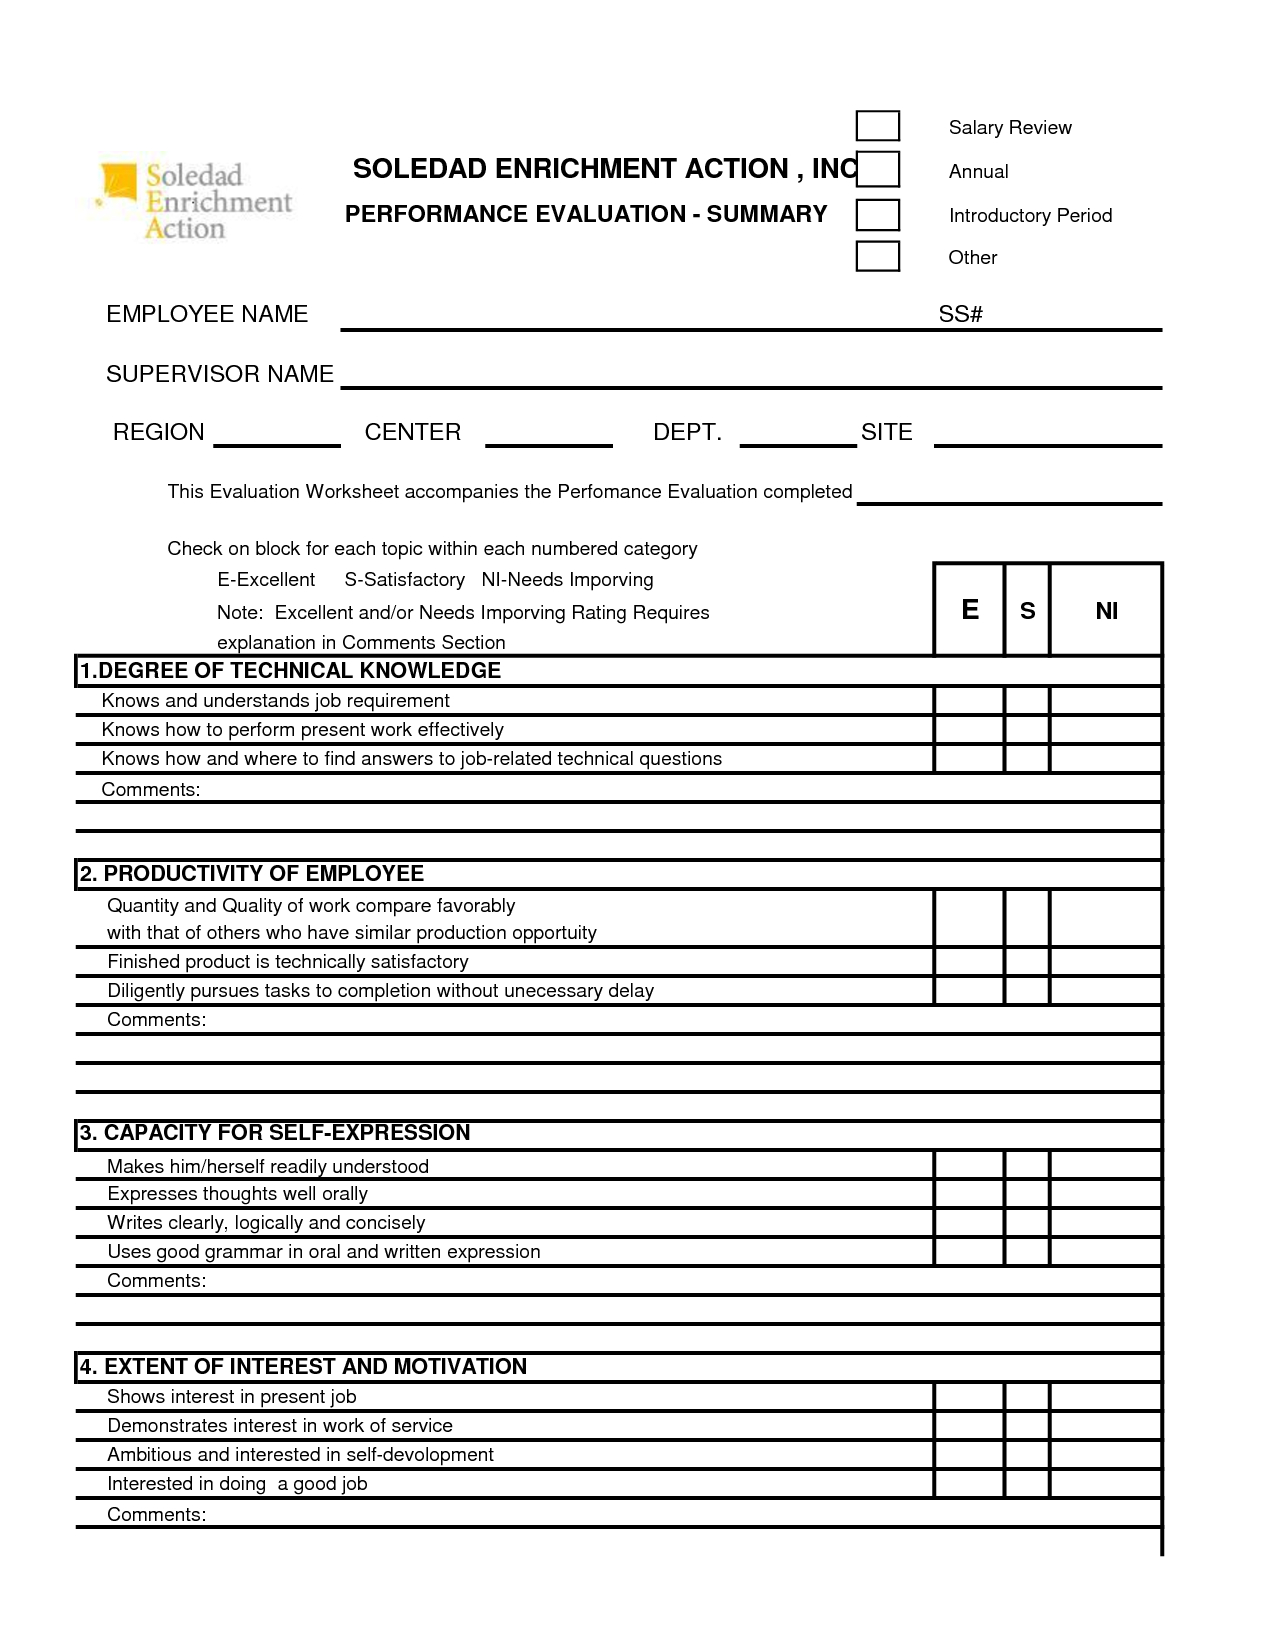 Free 360 Performance Appraisal Form - Google Search   The Career - Free Employee Self Evaluation Forms Printable